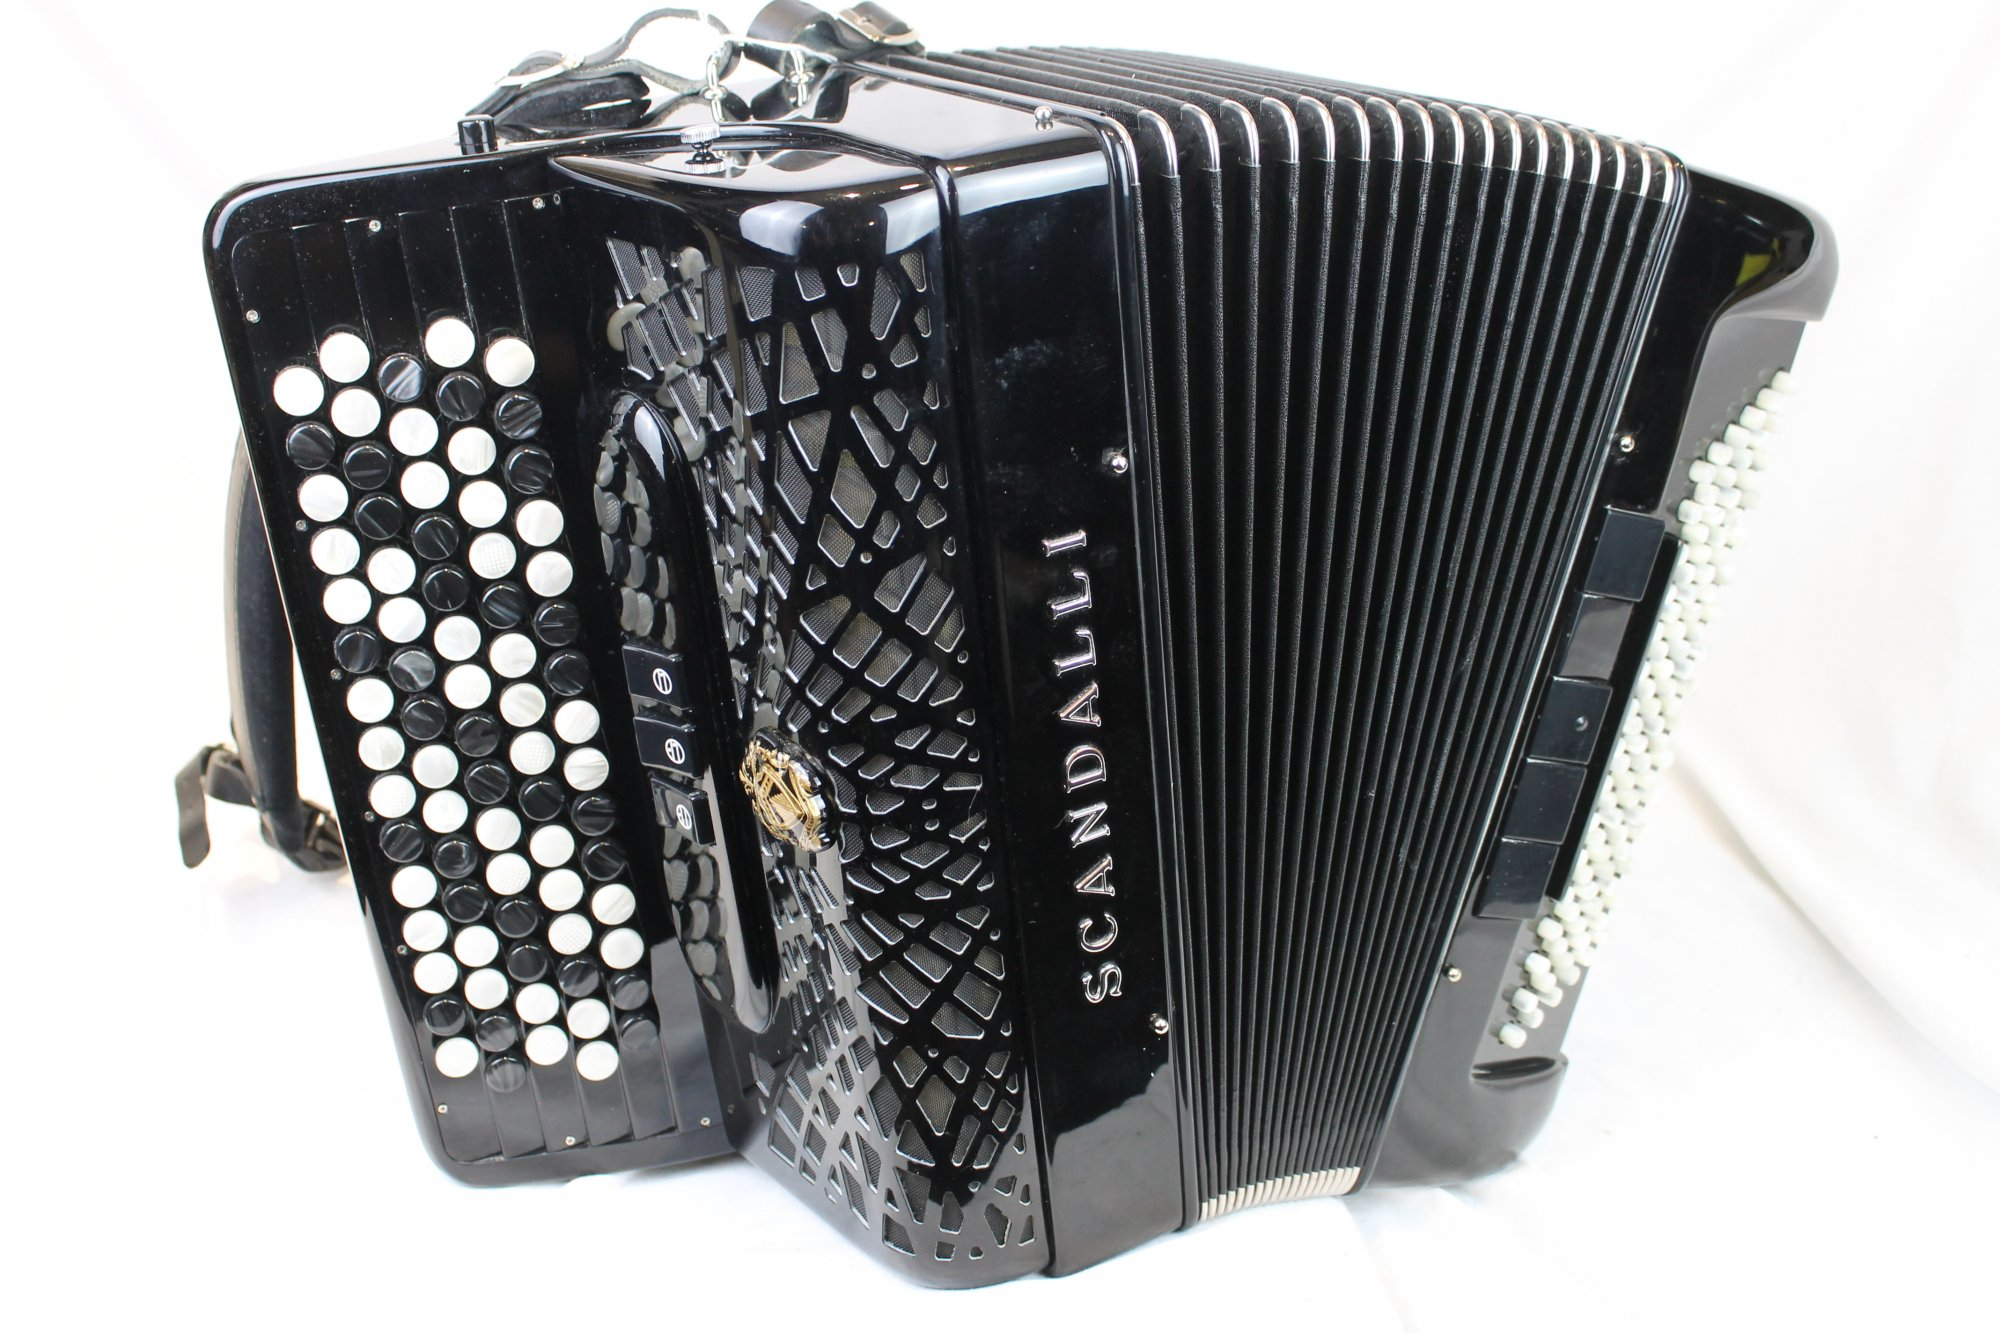 3562 - Certified Pre-Owned Black Scandalli 242 Chromatic Button Accordion Converter B LM 77 96